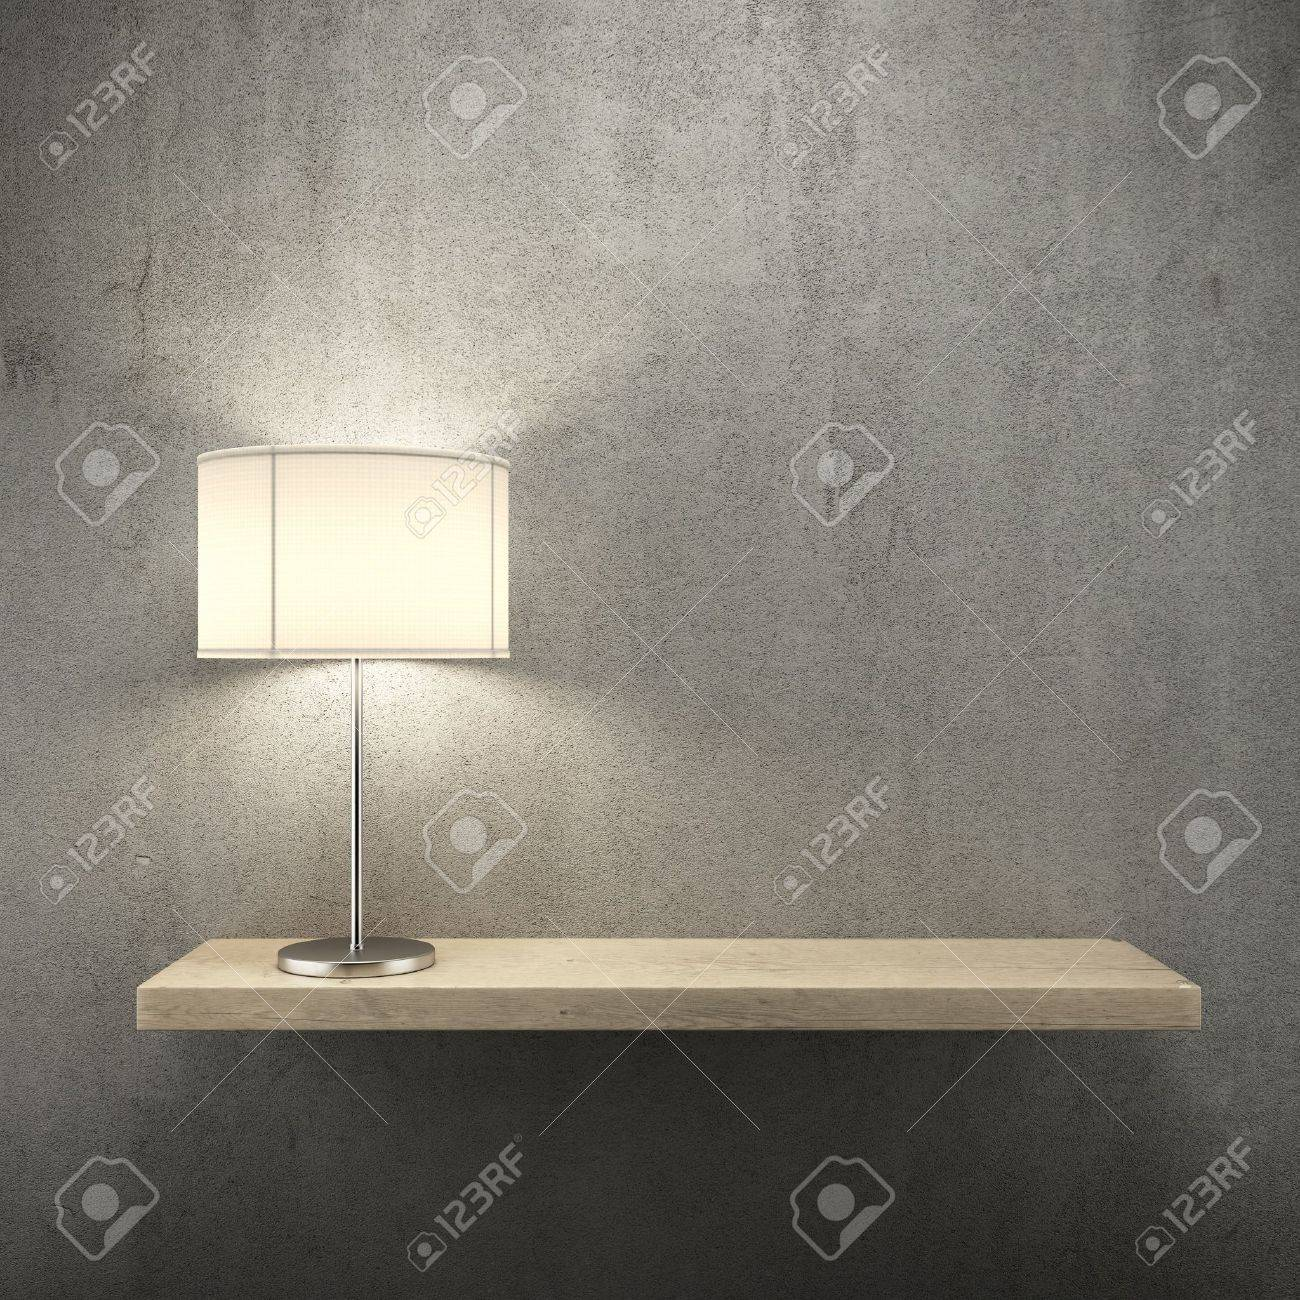 Bookshelf On The Wall With Lamp 3d Render Stock Photo